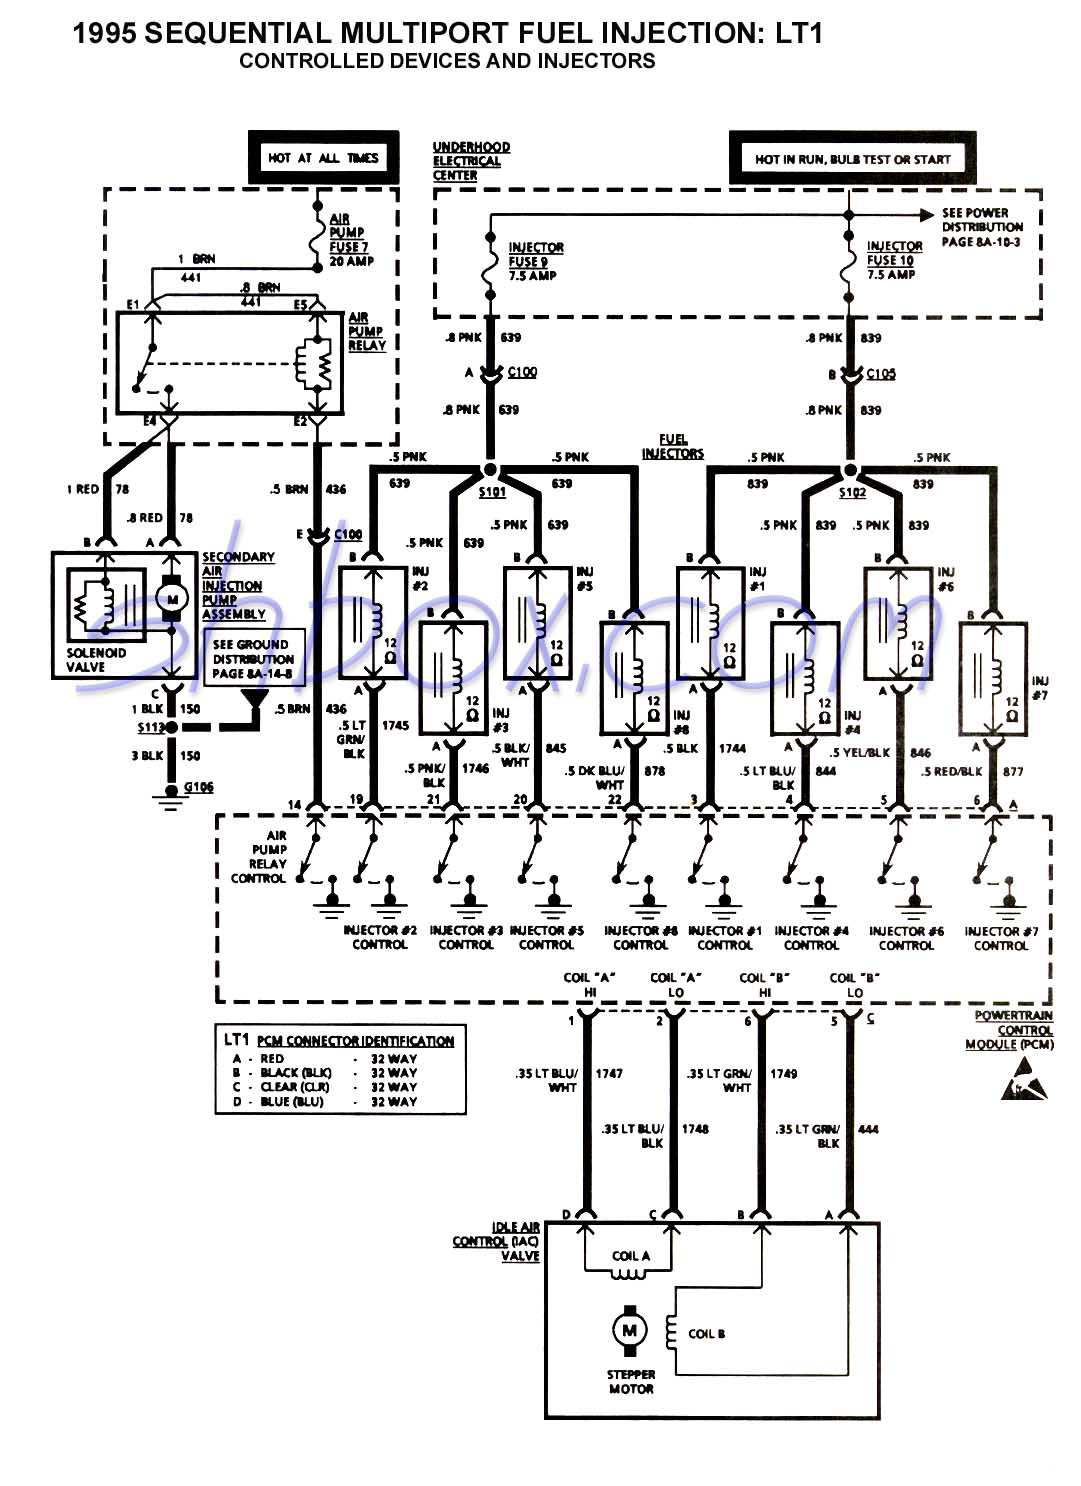 hight resolution of 95 lt1 wiring diagram wiring diagram todays rh 11 10 1813weddingbarn com 1977 corvette wiring diagram 76 corvette wiring diagram